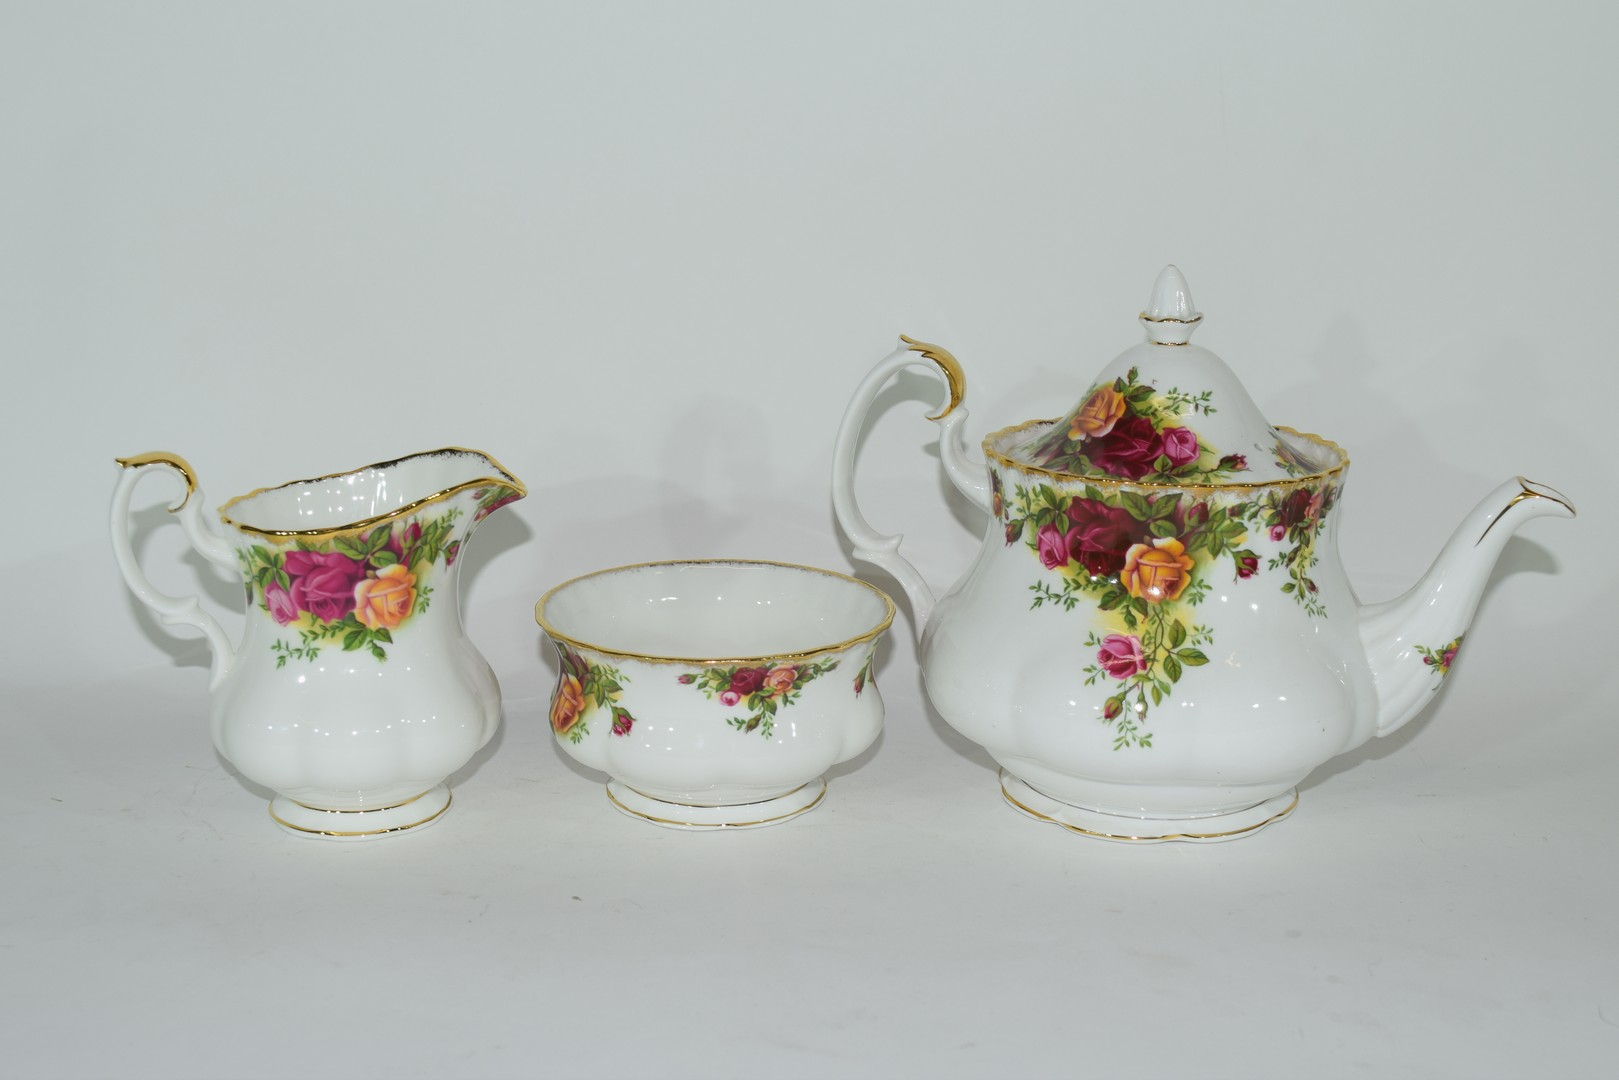 Royal Albert tea set in the Old Country Roses pattern